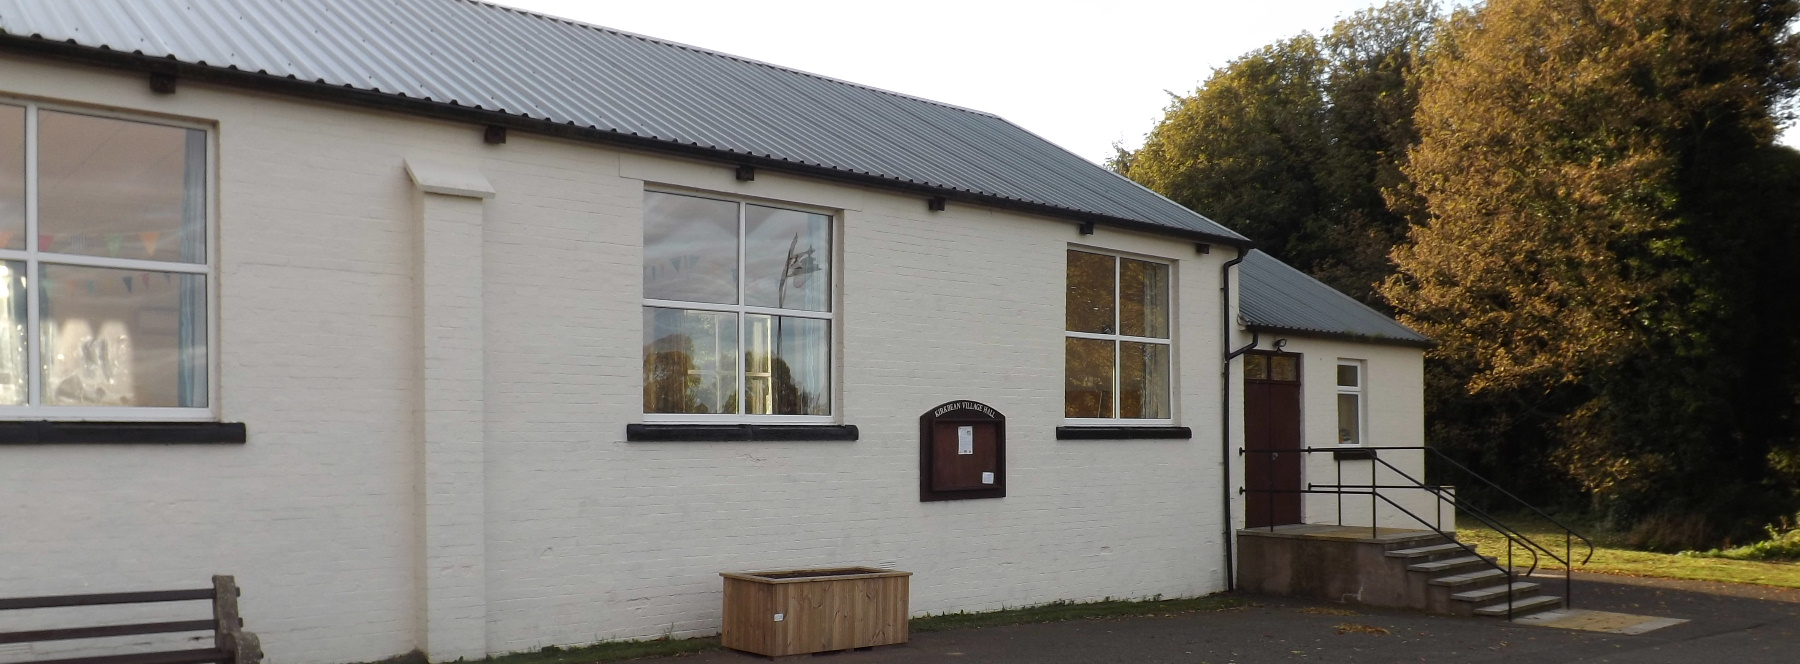 Hire Kirkbean Village Hall, Dumfries and Galloway Scotland